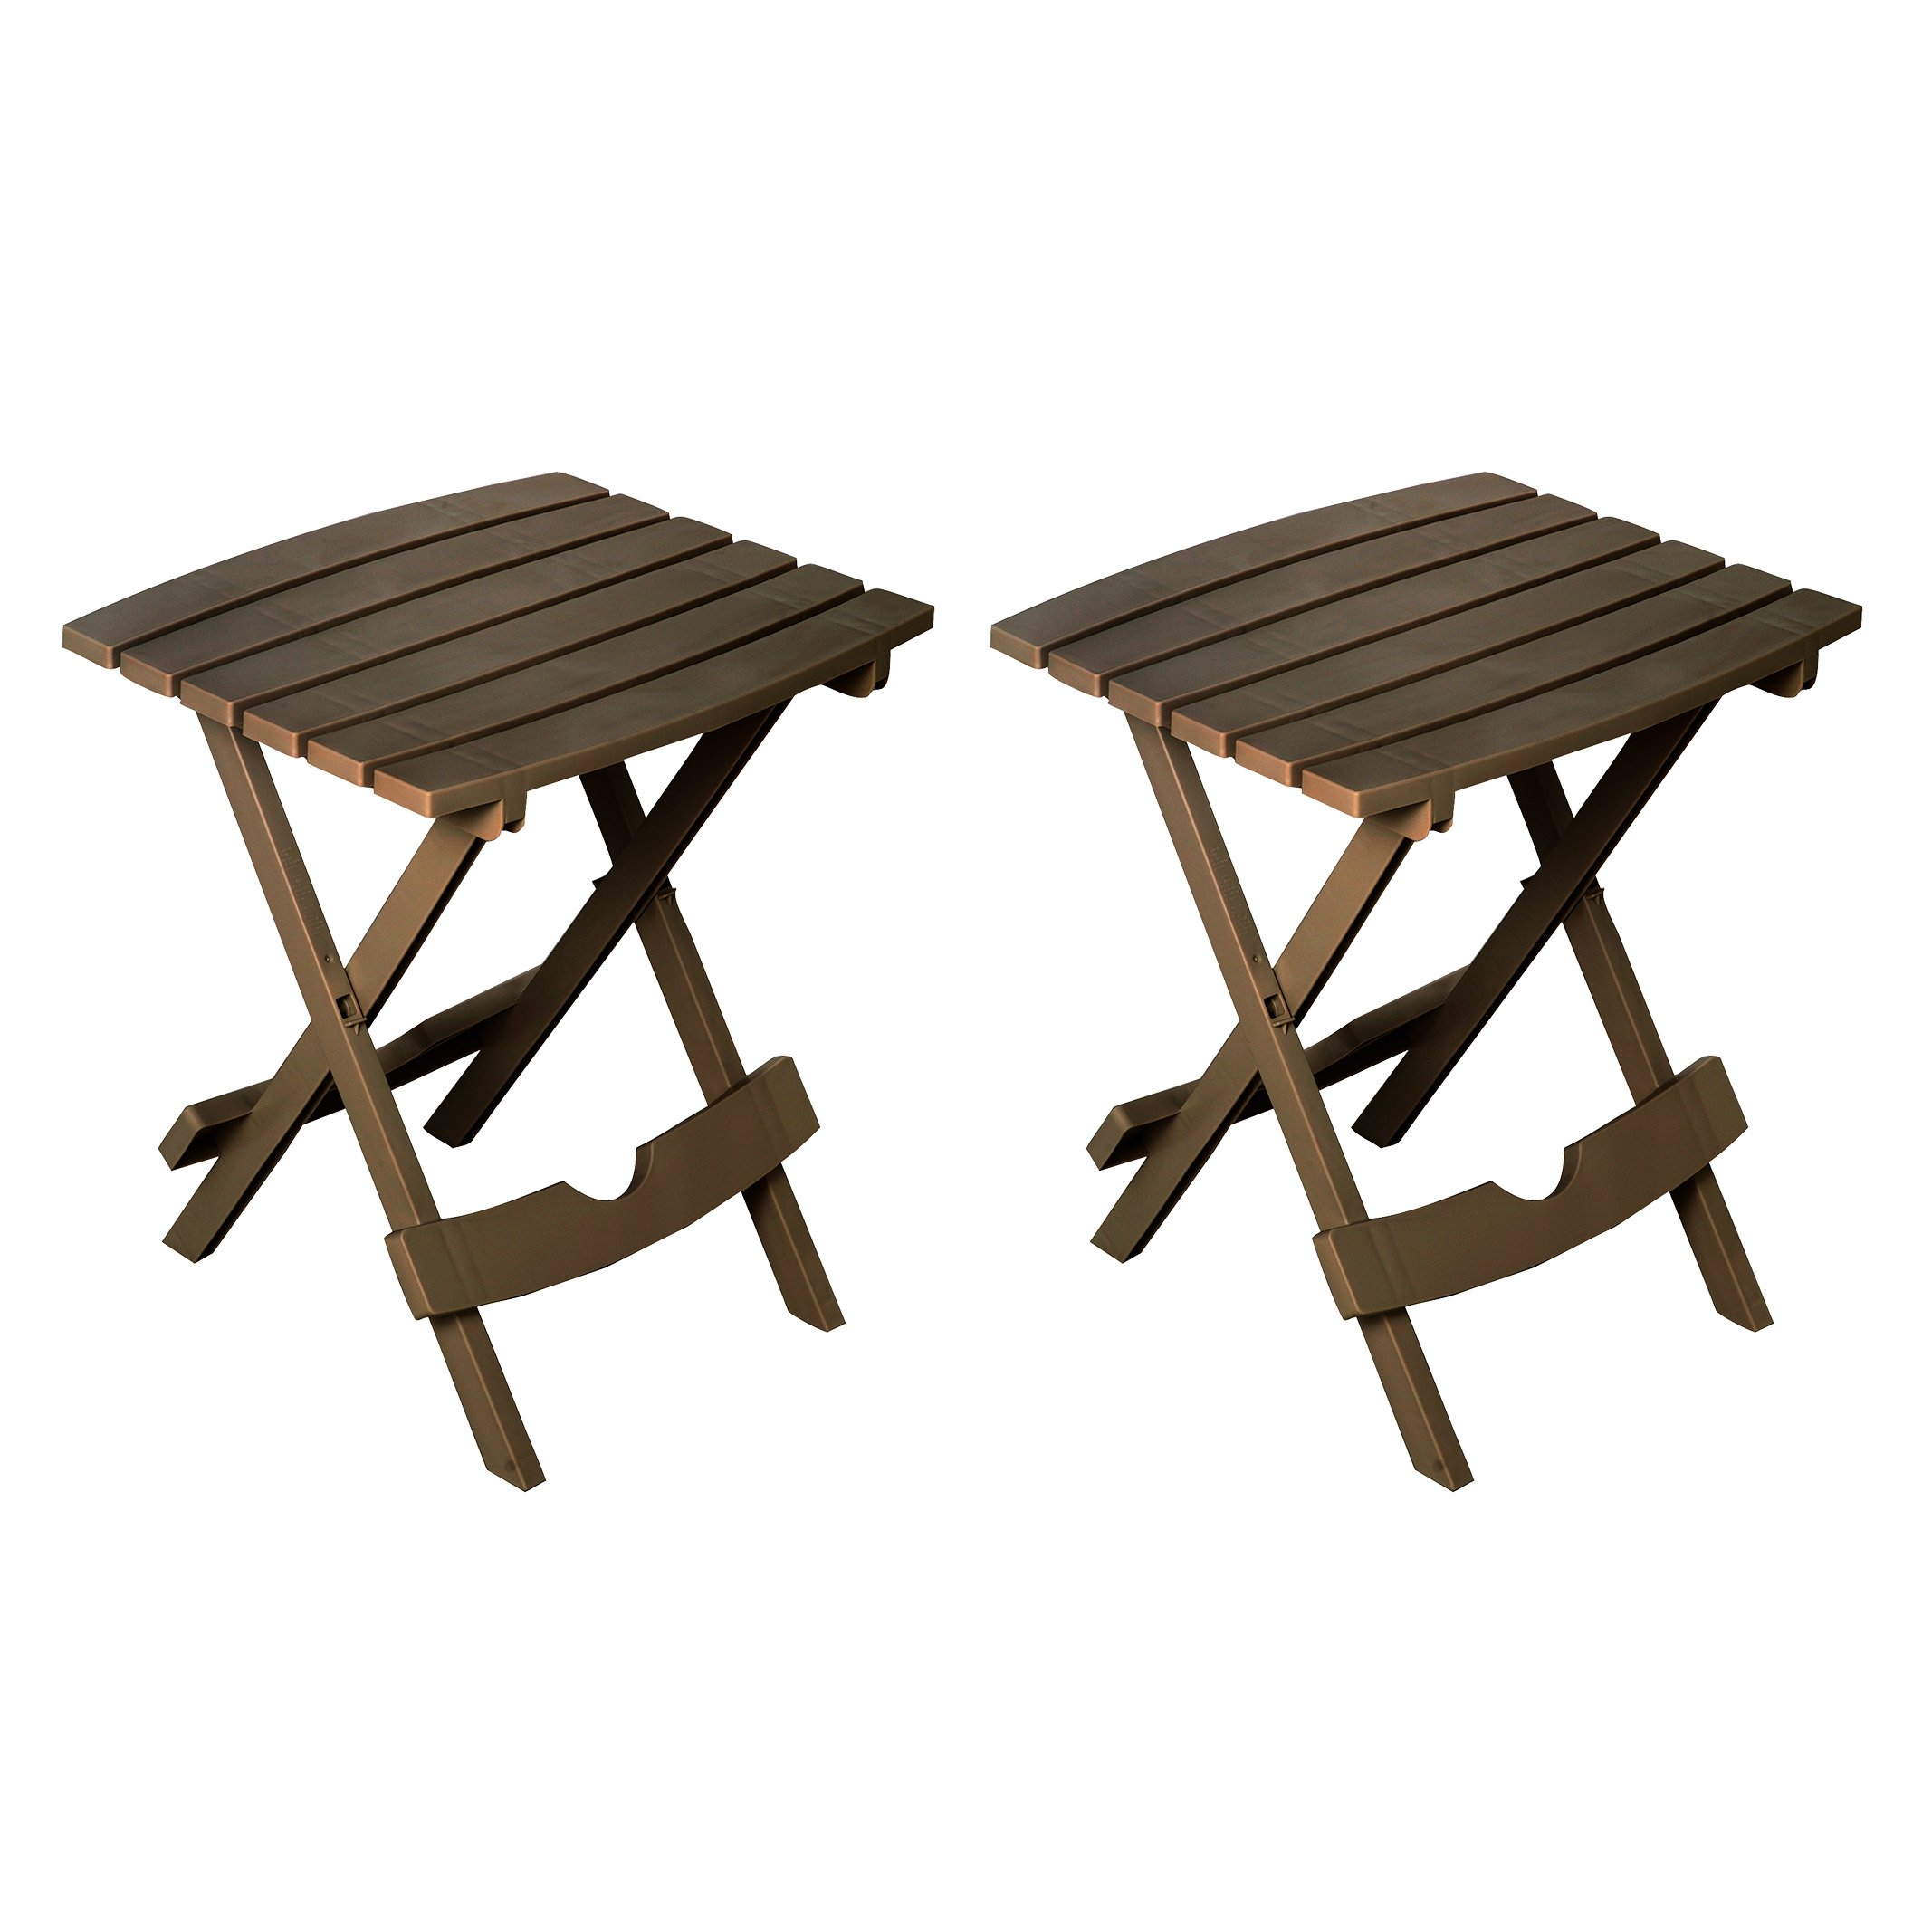 Adams Manufacturing 8500-60-4702 Quik-Fold Side Table, Earth Brown/2 Pack